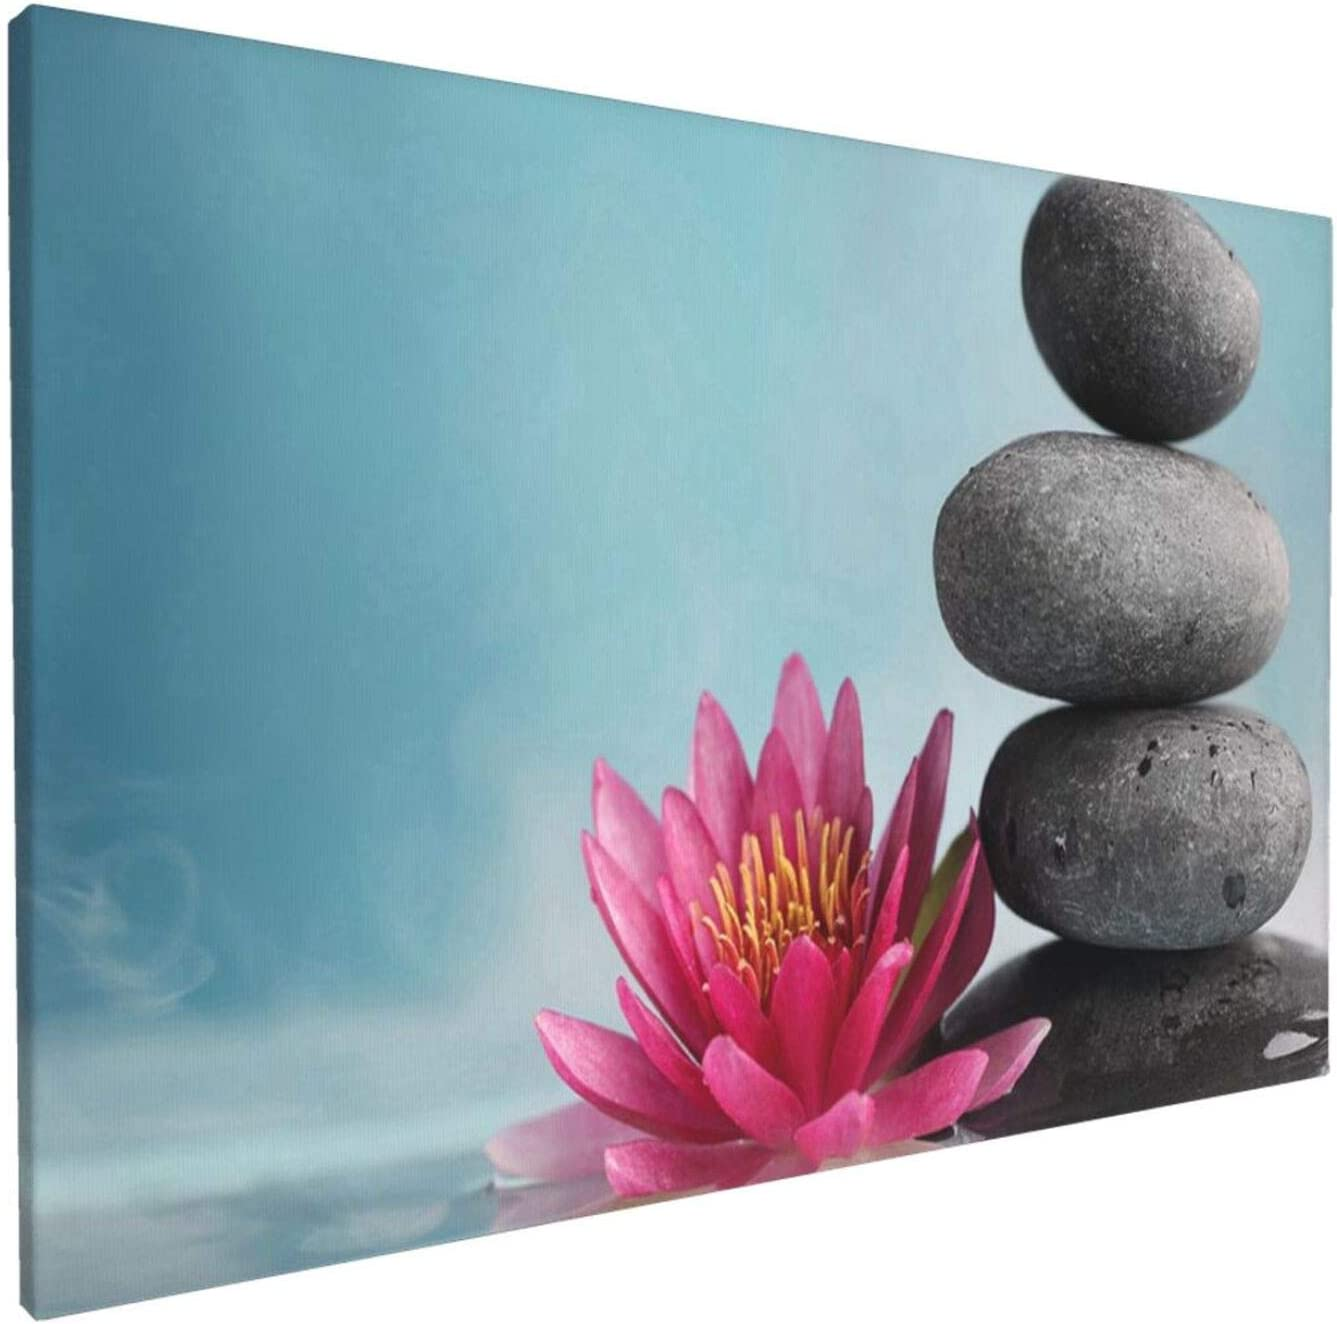 Abstract Wall Art Gallery Wall Decor, Triple Stone Lotus Wall Paintings, Farmhouse Decor for the Home, Wall Pictures for Living Room Frameless Wall Hanging Decor Paintings 18x12 Inch